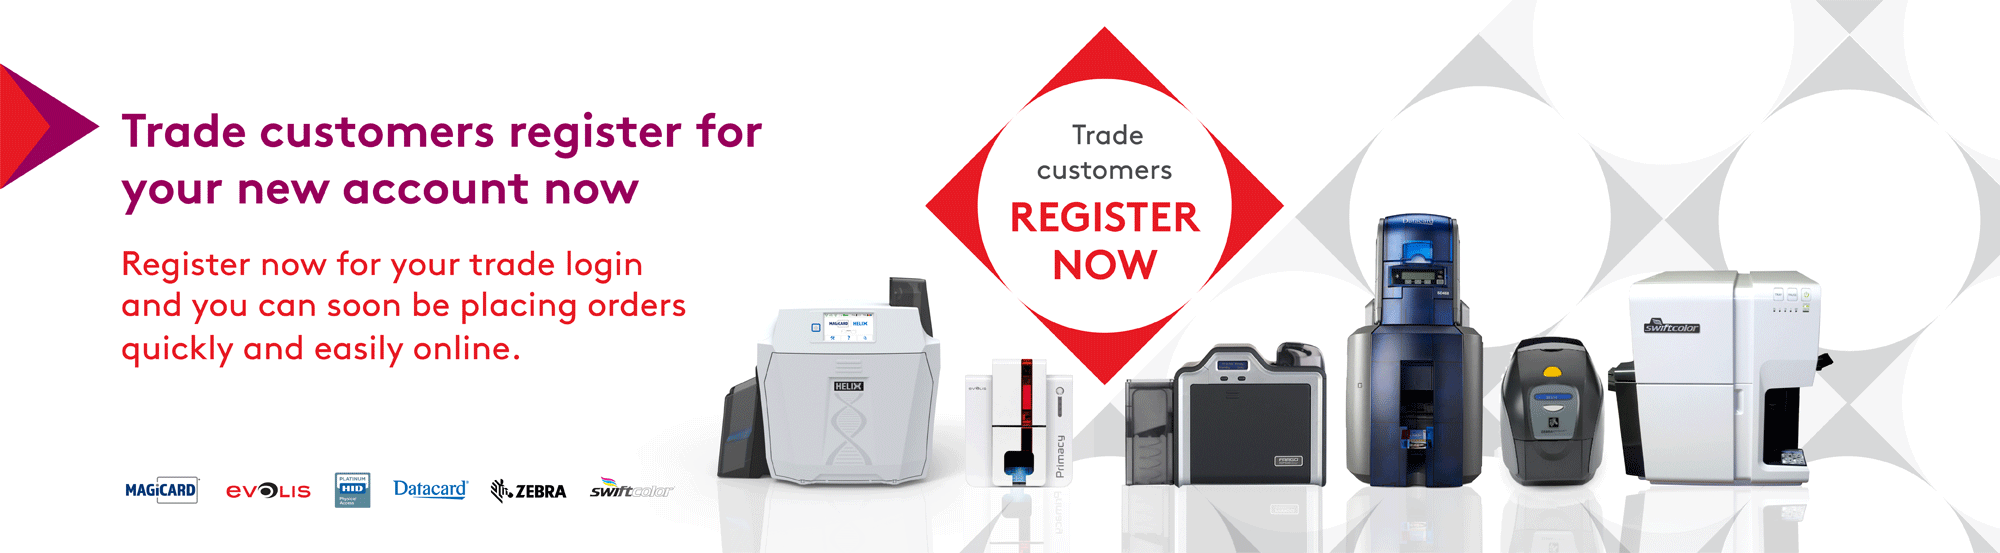 Register for trade account